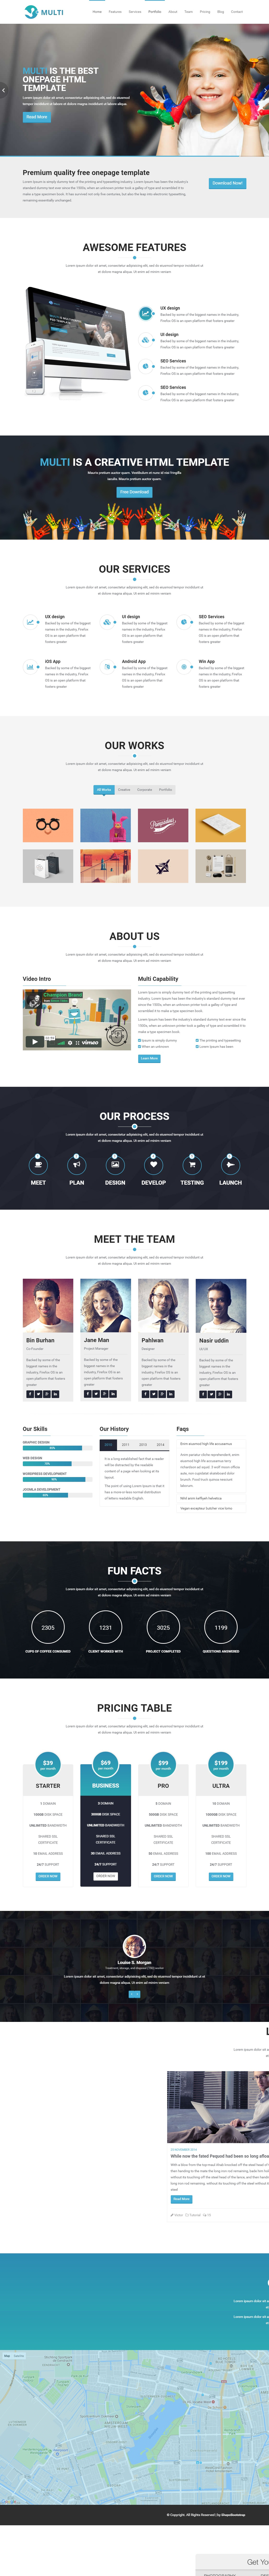 Free-CSS---Free-CSS-Templates---Demo-of-the-HTML-CSS-Template-Multi